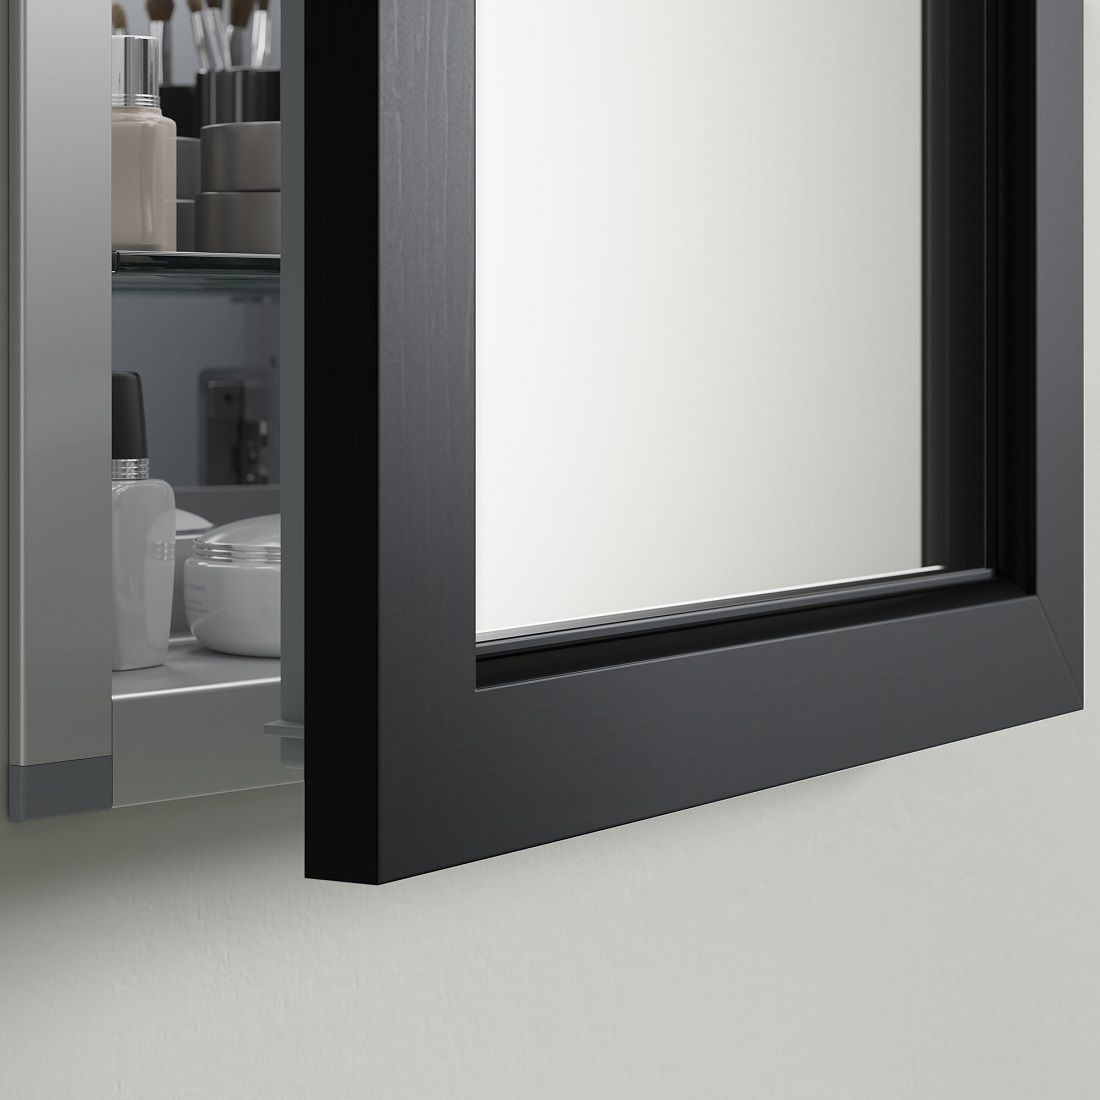 55 Robern Recessed Medicine Cabinets Apartment Kitchen Cabinet Ideas Check More At Http Ww Full Length Mirror In Bathroom Bathroom Storage Mirror Cabinets